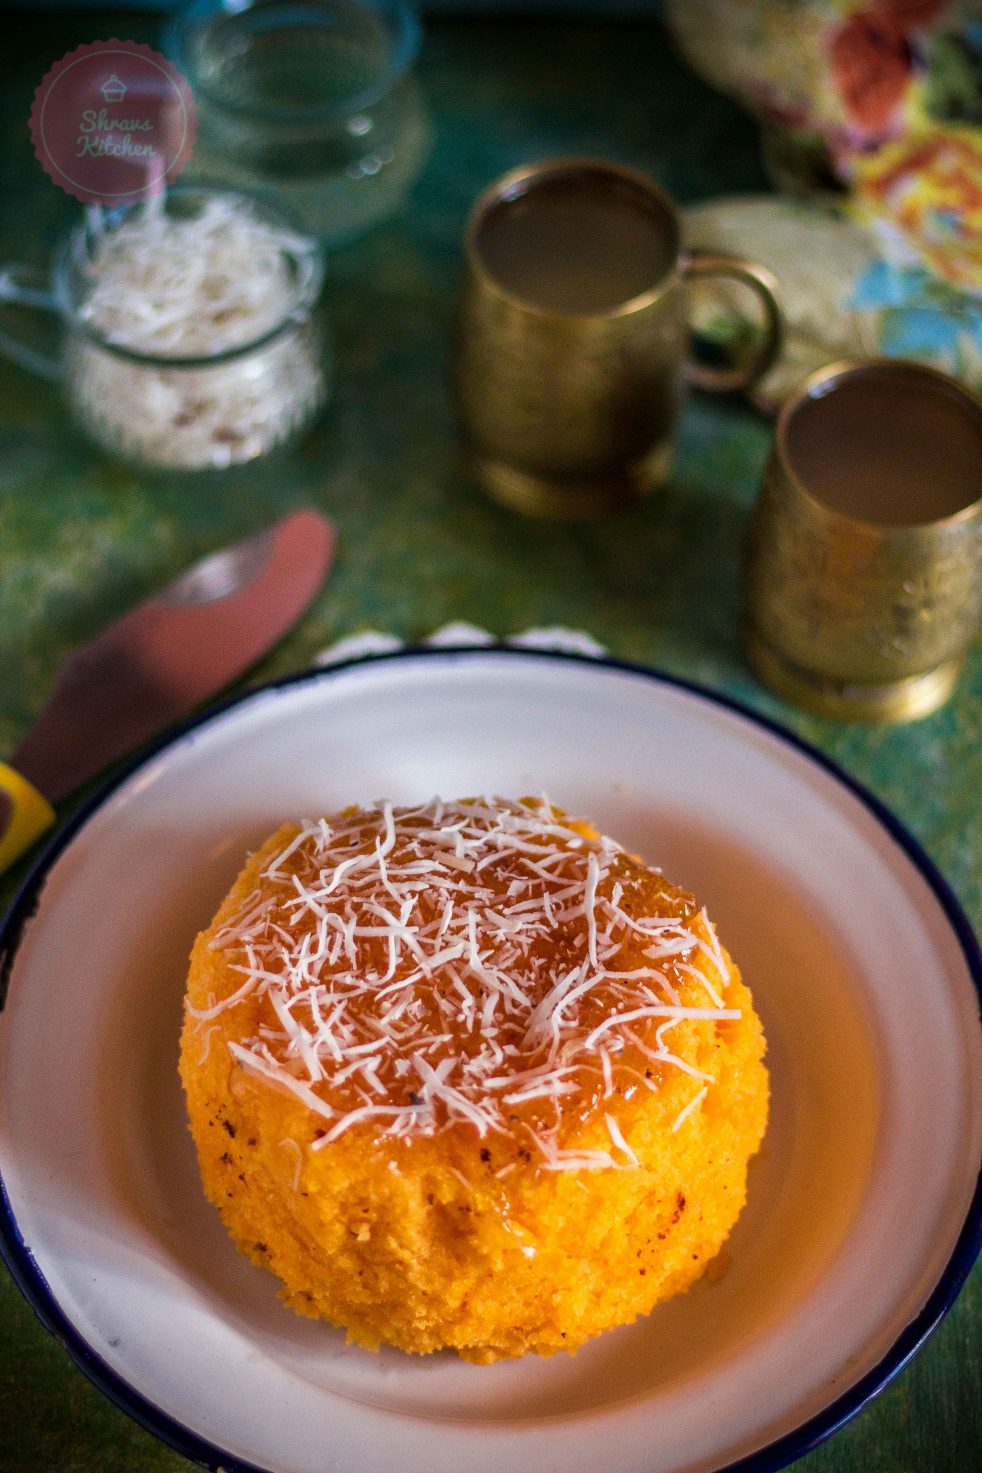 eggless orange cake / orange honey cake / orange marmalade cake / orange cake with jam glaze / orange cooker cake / eggless pressure cooker cake / orange sponge cake